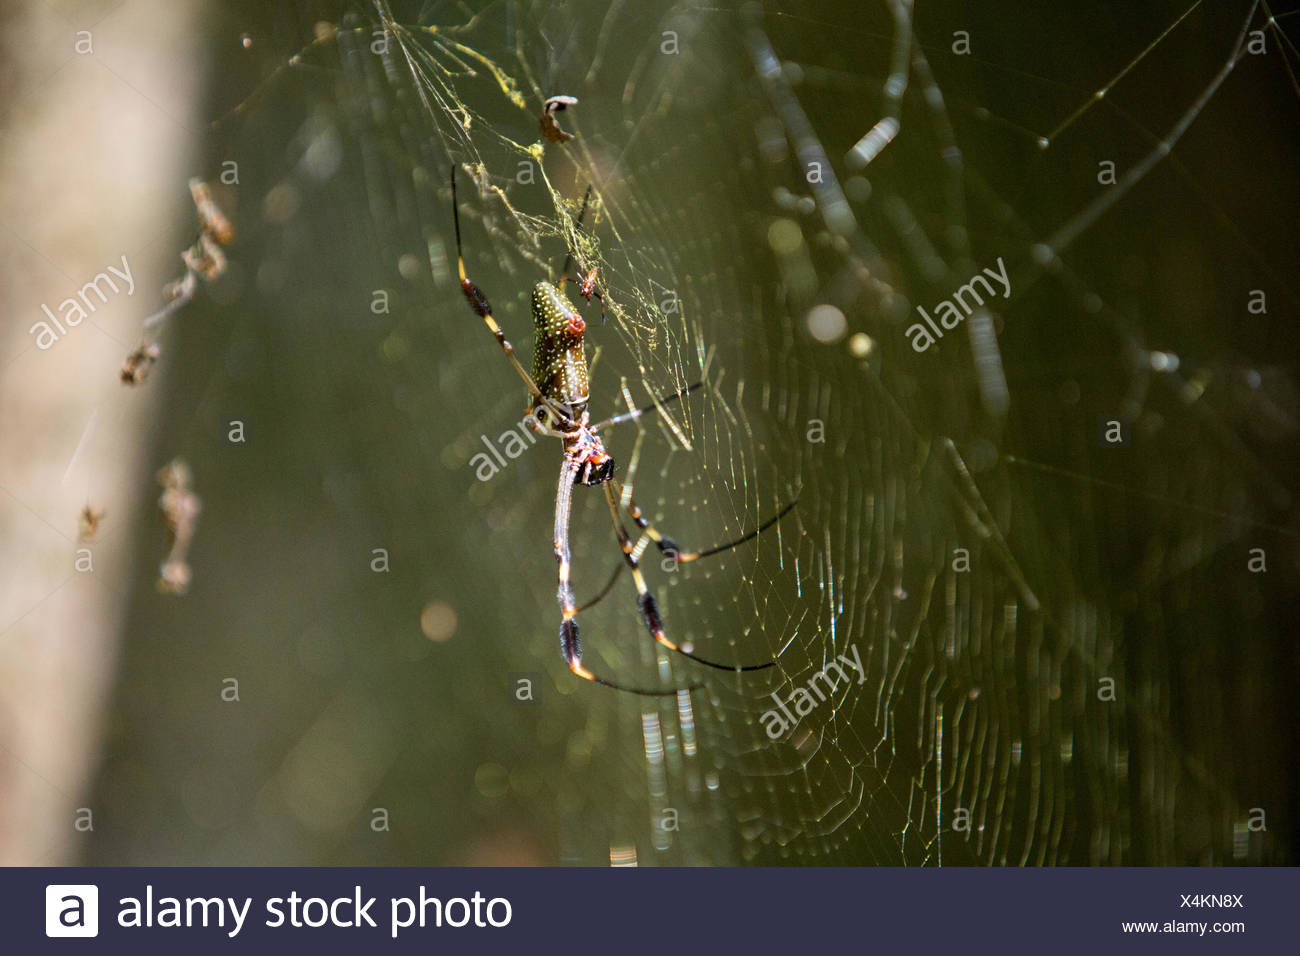 A golden-orb spider in its web. - Stock Image